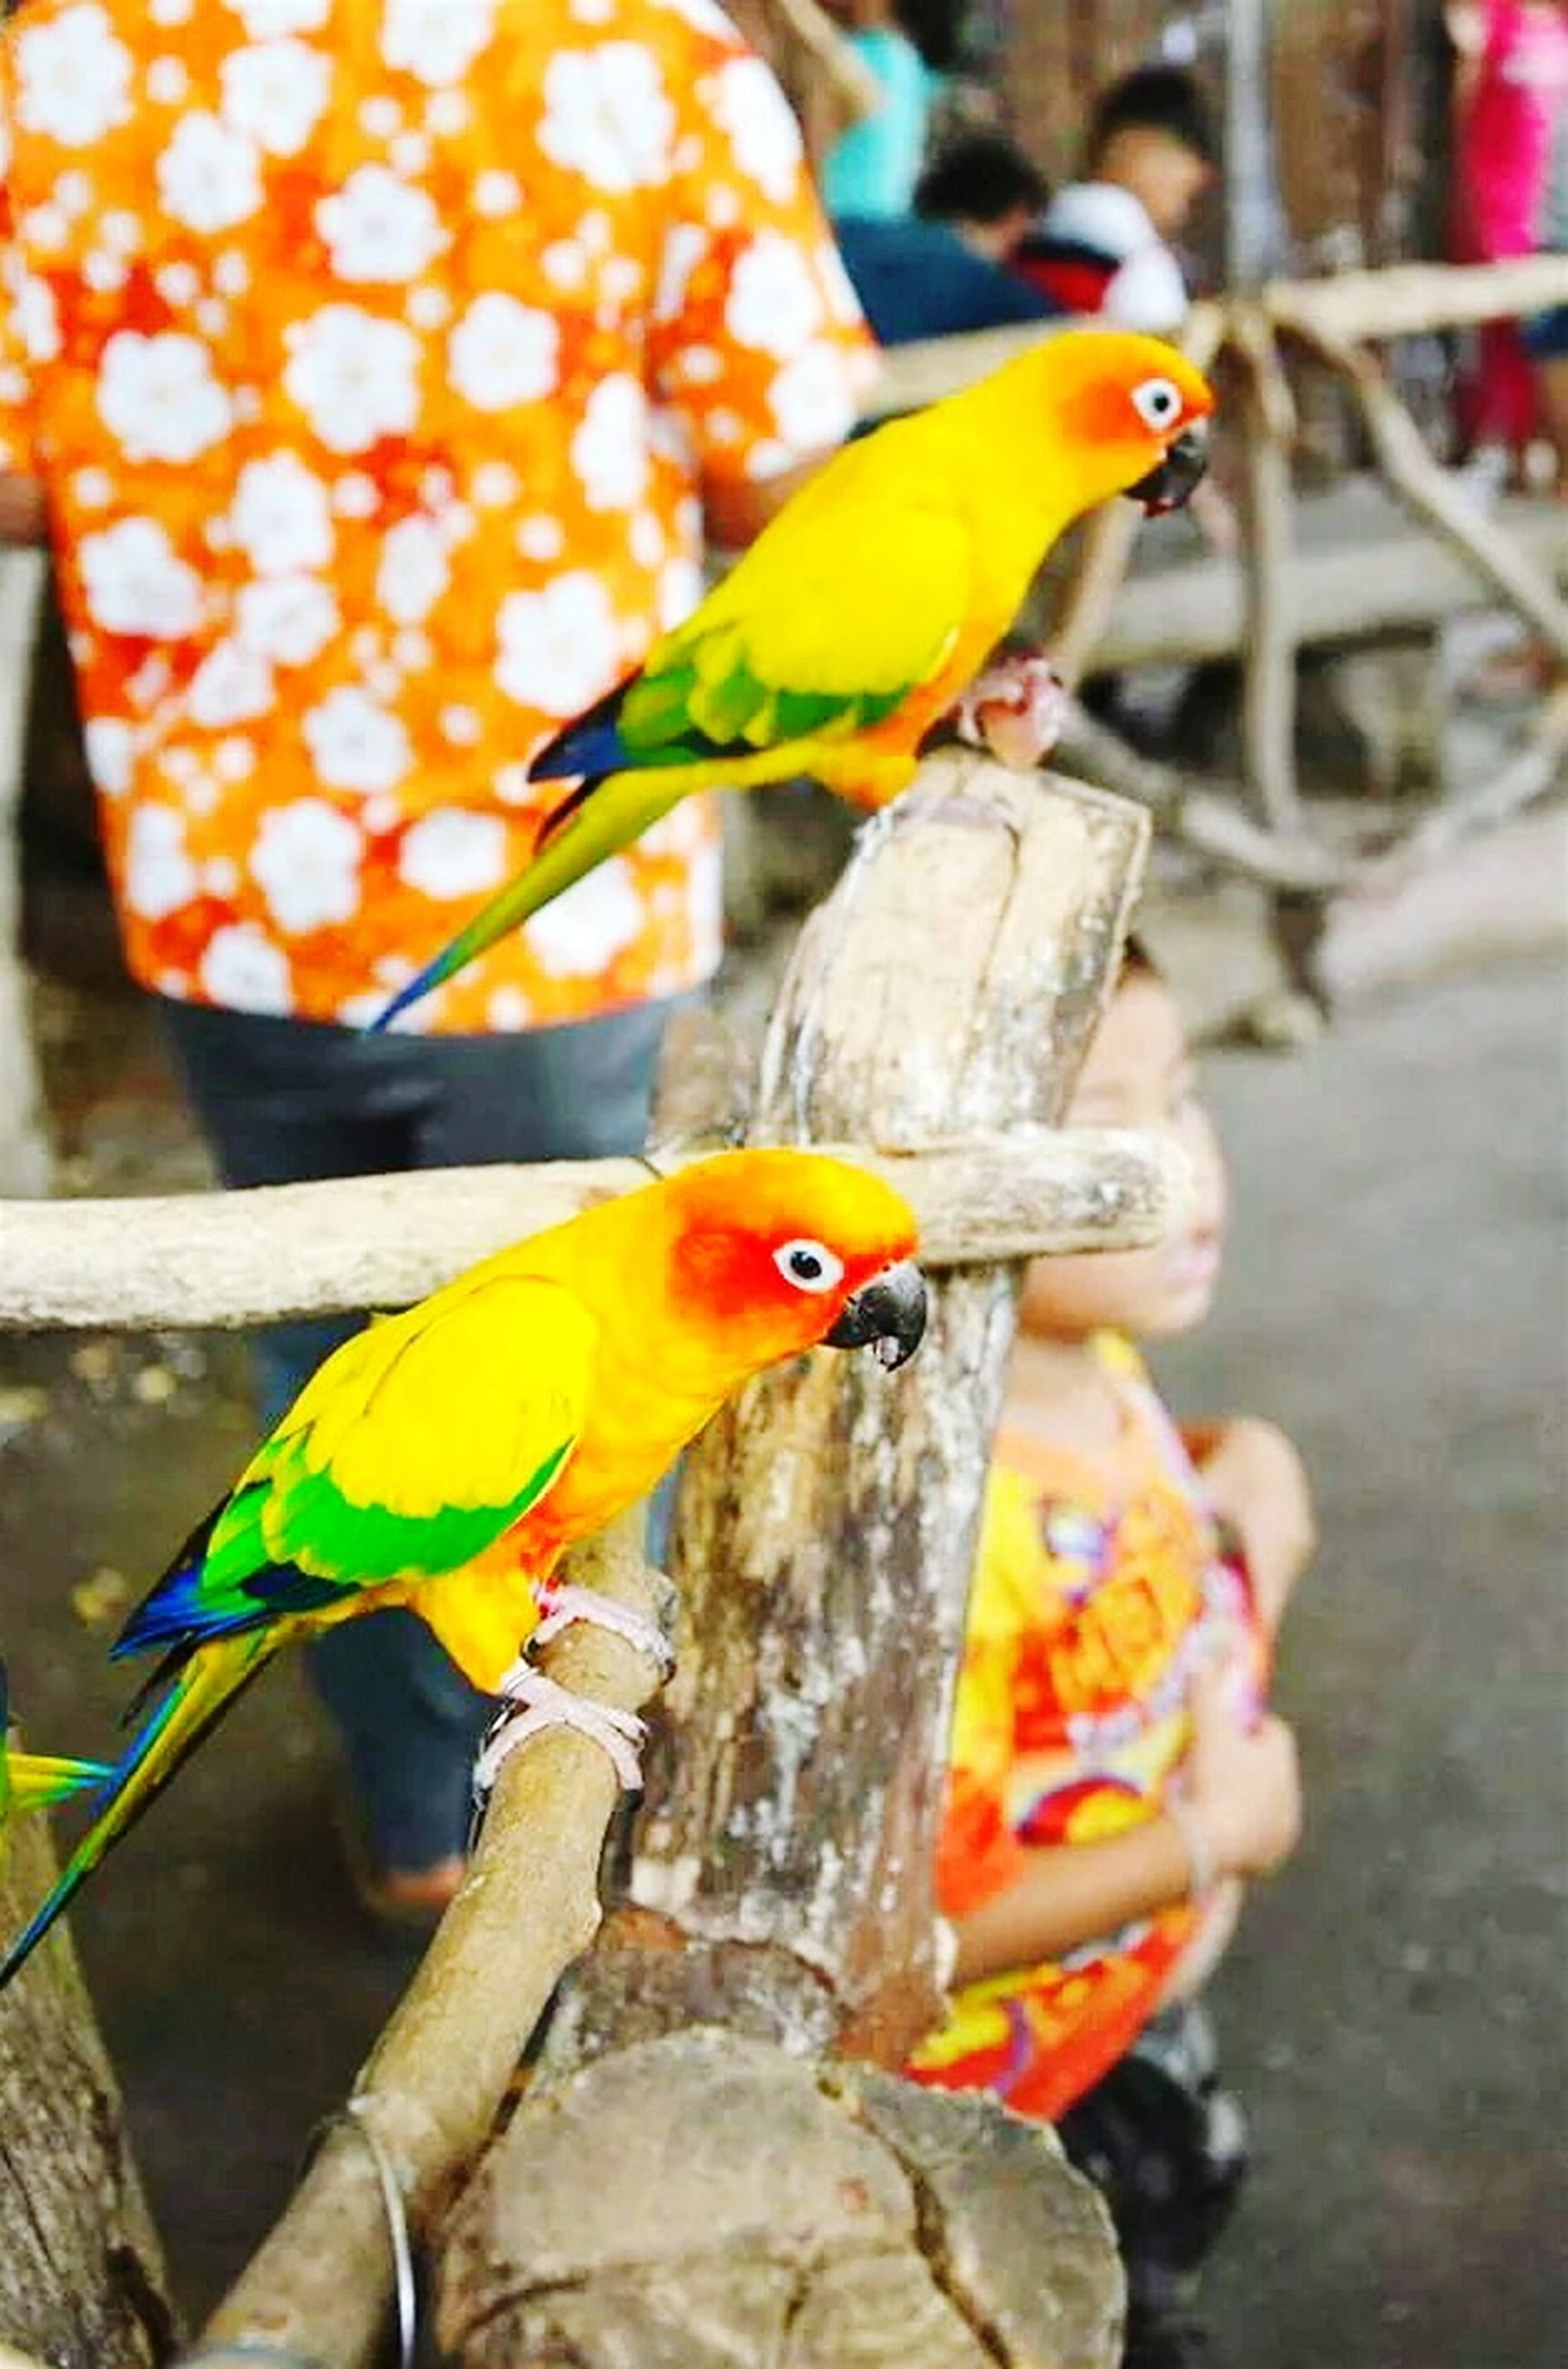 animal themes, animals in the wild, bird, one animal, perching, wildlife, focus on foreground, parrot, multi colored, yellow, close-up, branch, tree, nature, beak, day, outdoors, full length, no people, two animals